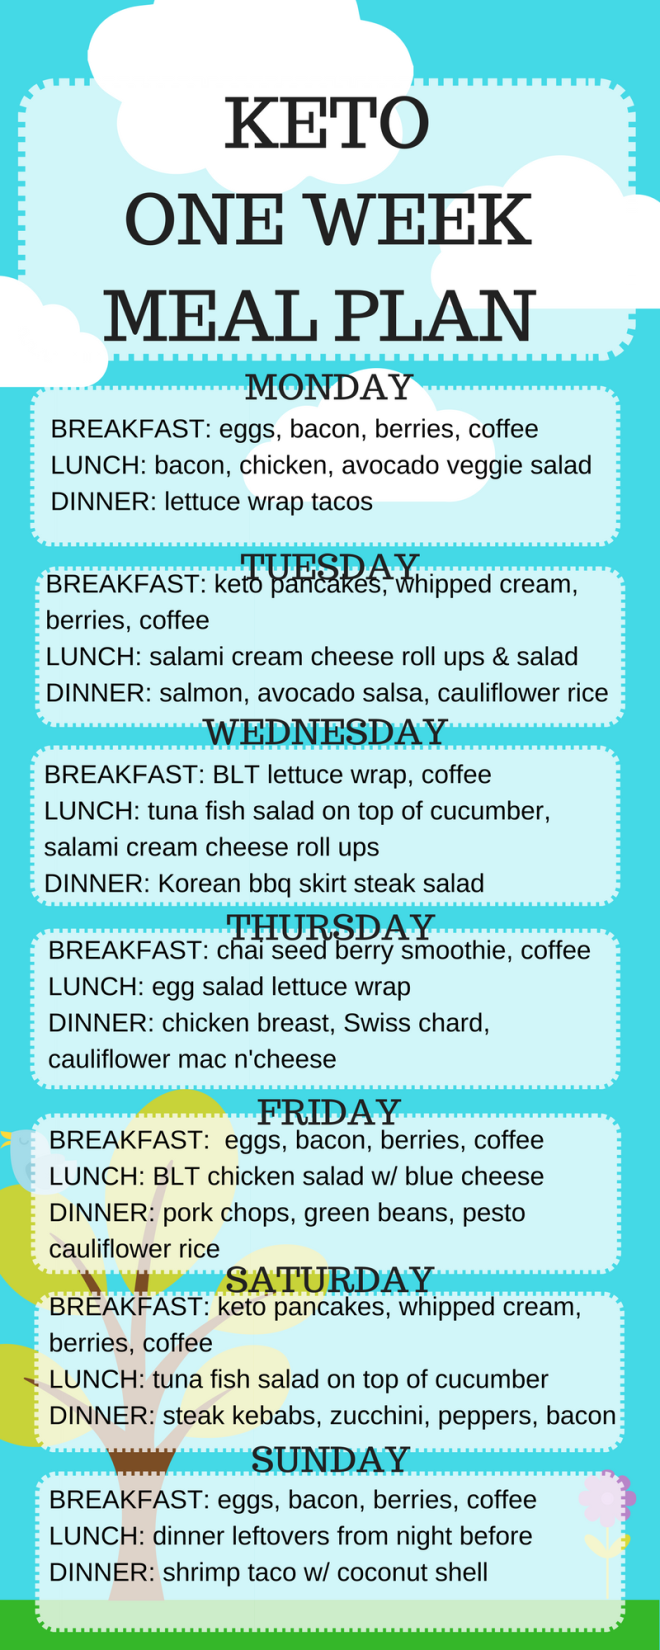 keto one week meal plan seasonal solutions week meal plan pinterest repas quilibr. Black Bedroom Furniture Sets. Home Design Ideas